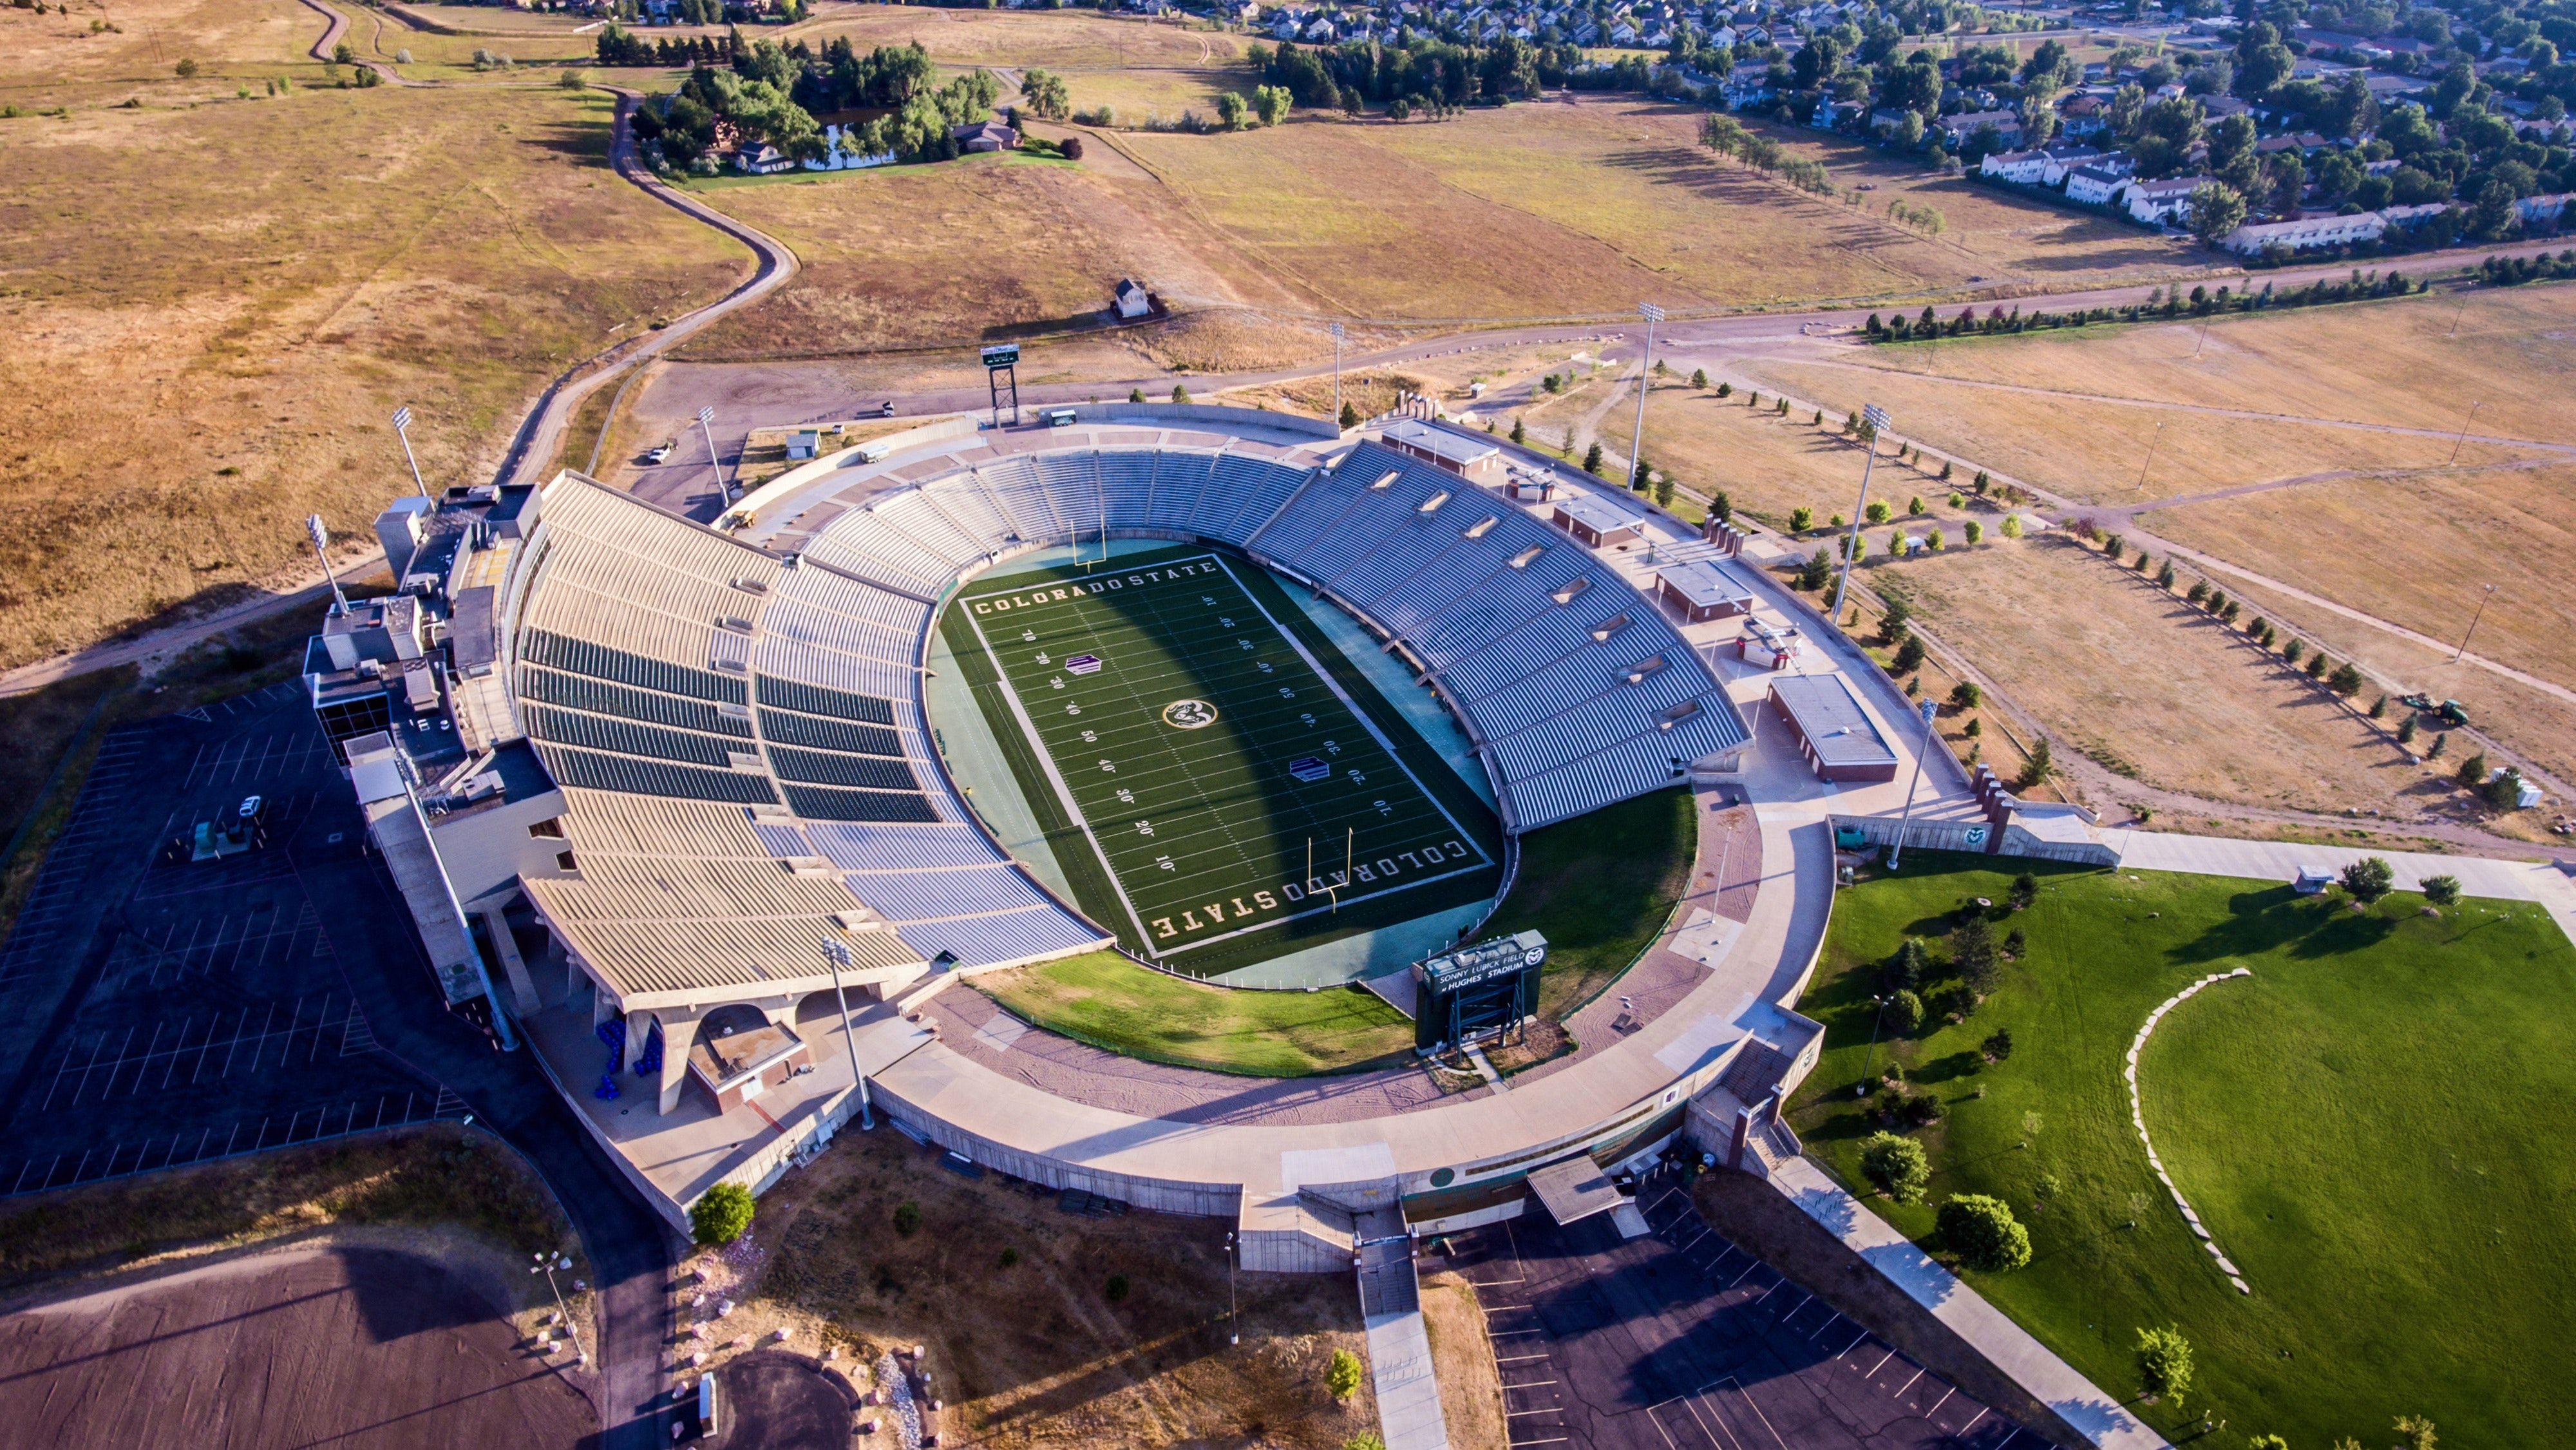 Aerial Photo of Gray and White Stadium, Architecture, Fort collins, Steel and concrete structure, Stadium, HQ Photo